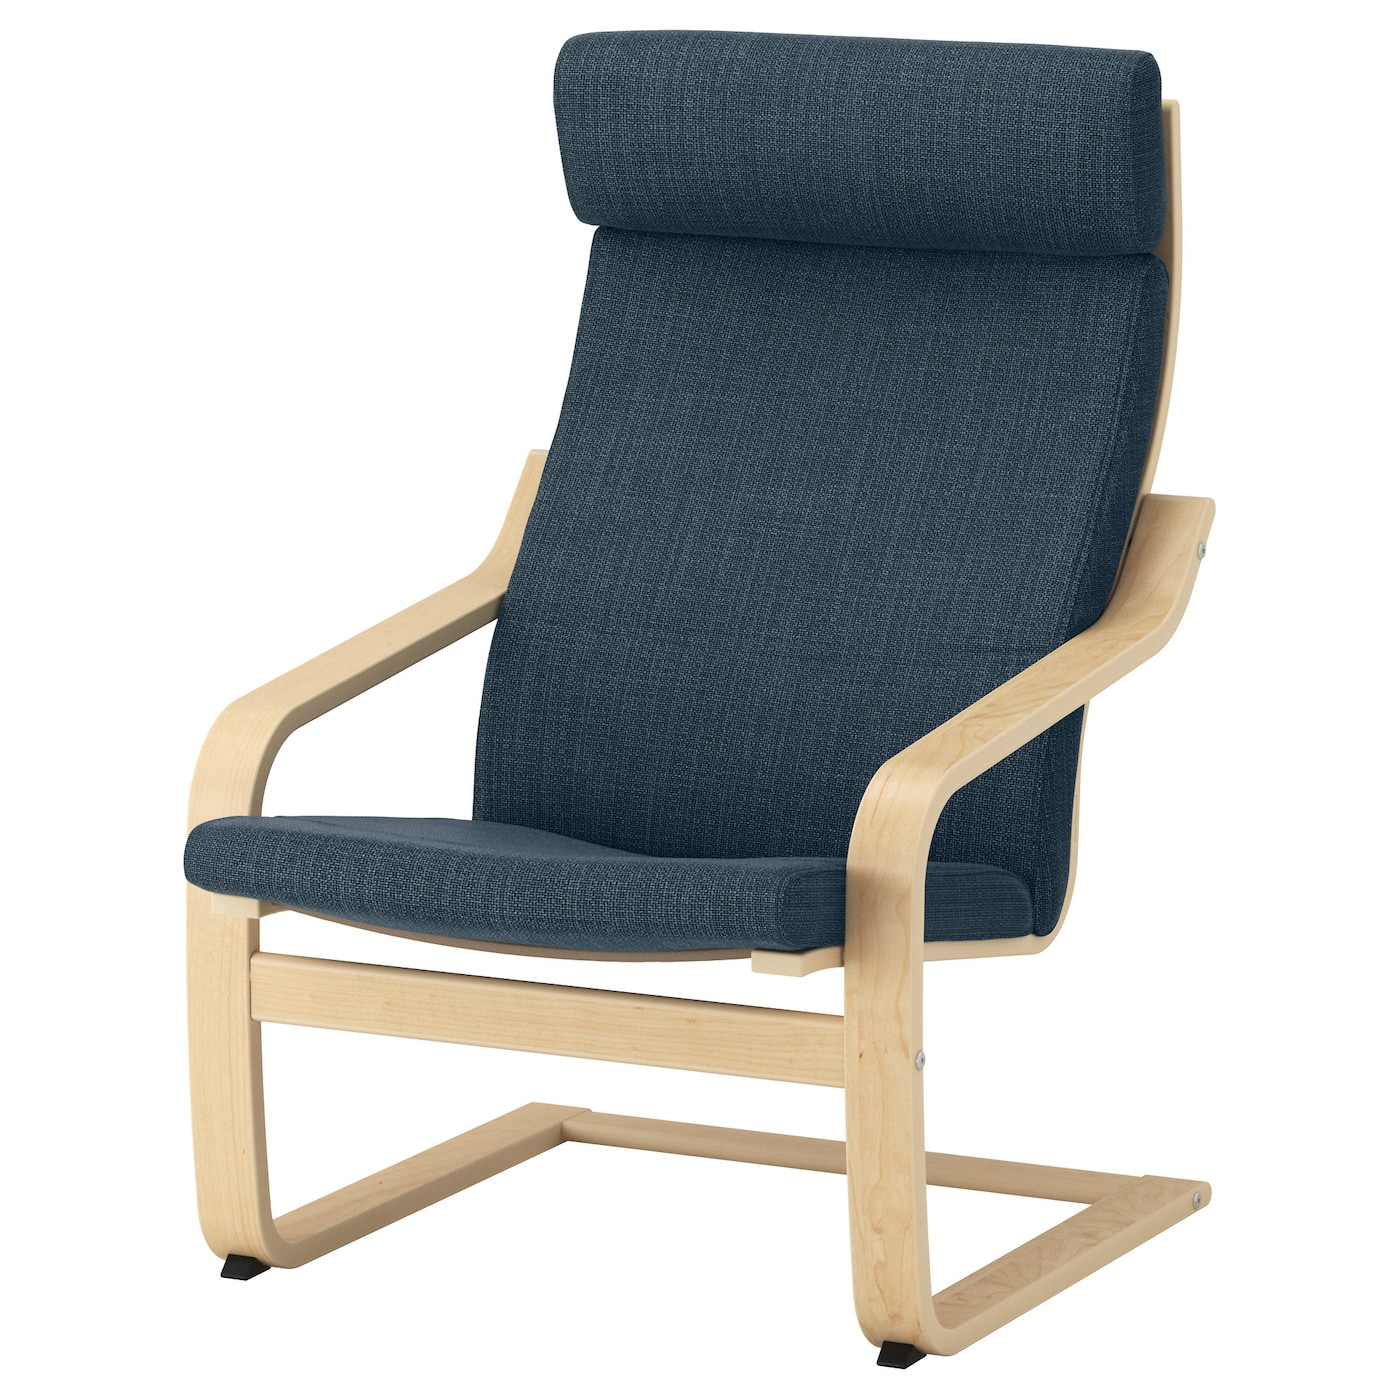 Ikea PoÄng Armchair Layer Glued Bent Birch Frame Gives Comfortable Resilience